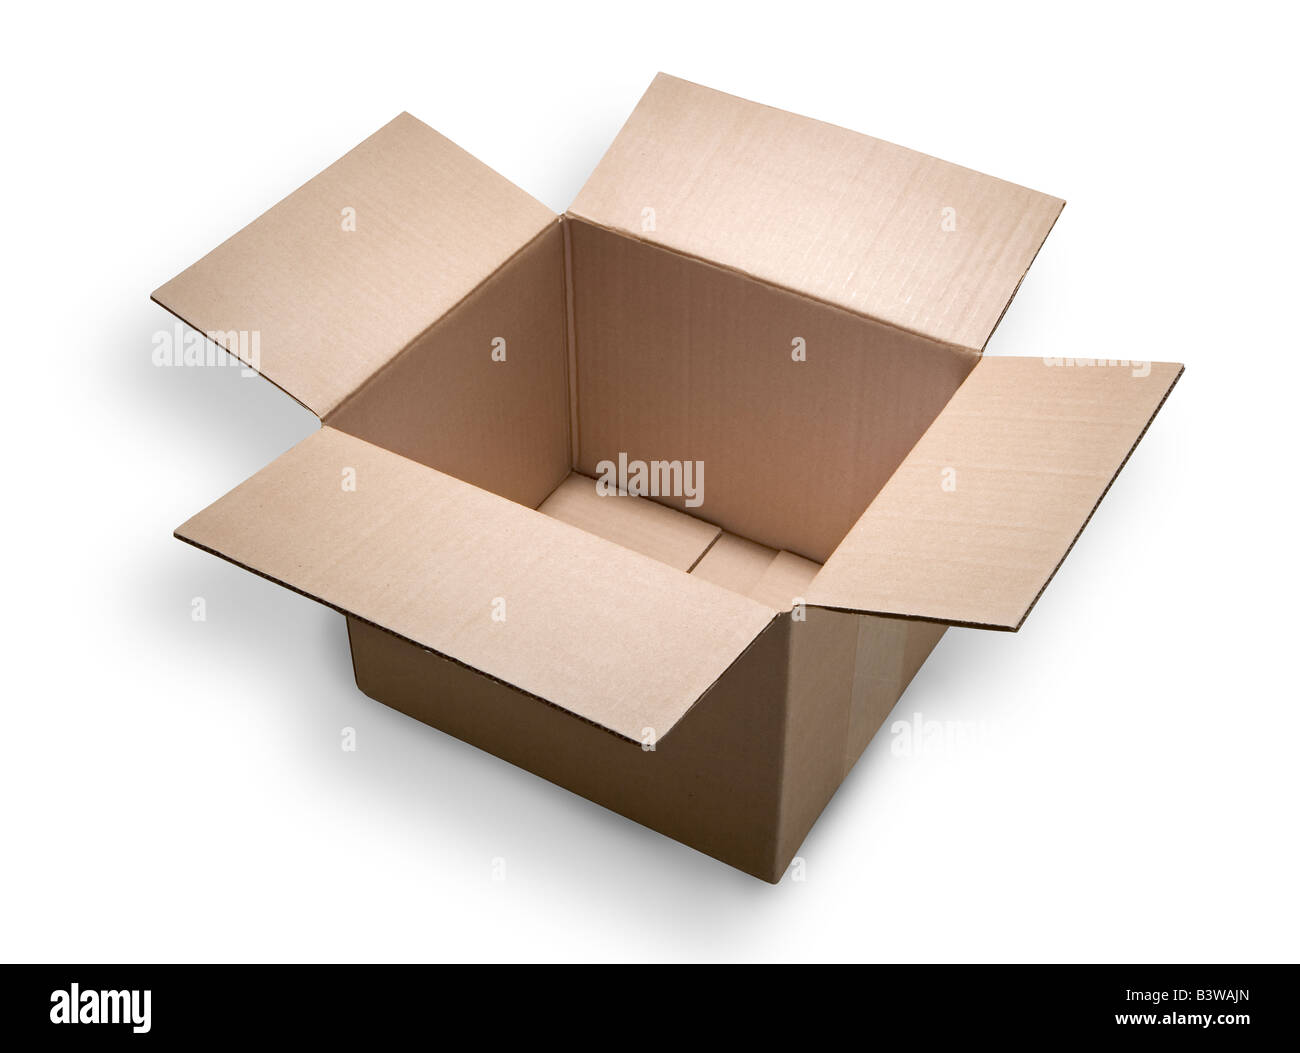 An empty and open cardboard box or carton on a white background Clipping path included - Stock Image